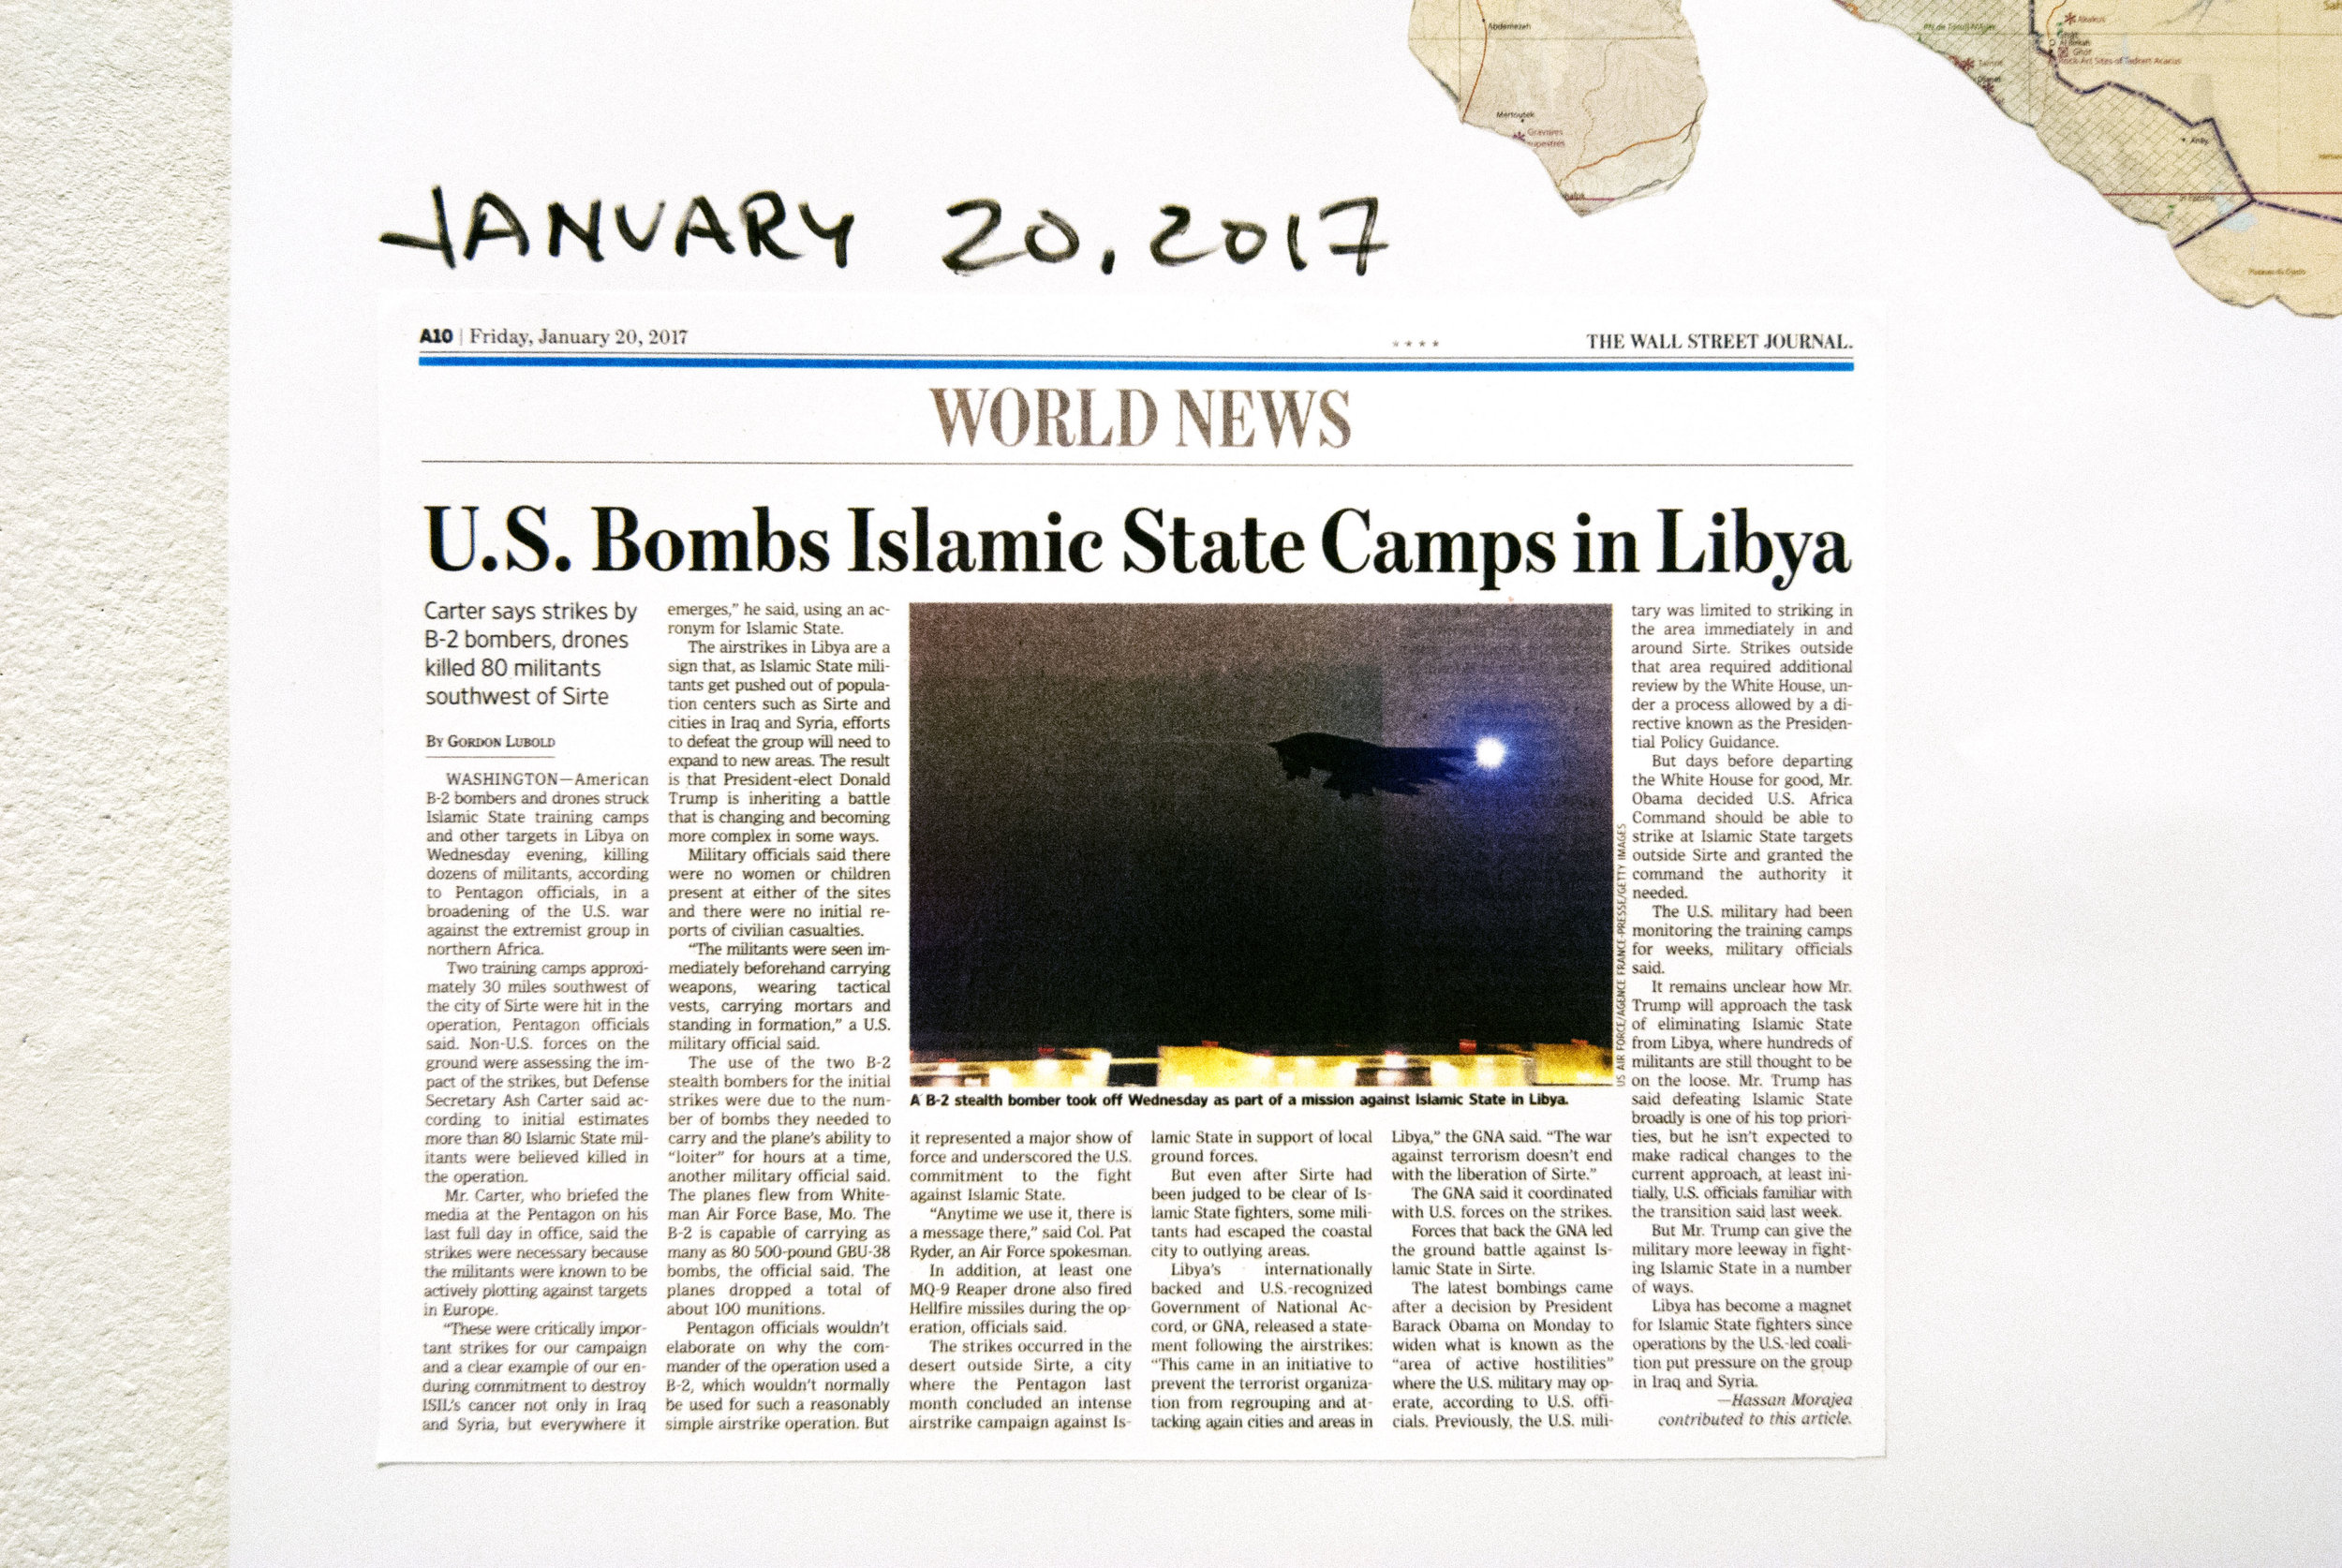 The WSJ news article, describing an attack from the stealth-bomber airbase in Missouri. The flight price alone was $4.4 M. The 100 bombs dropped cost ca. $1.4 M. Drones as well push the cost of the strike to $6 M. 80 ISIS soldiers were reportedly killed. The cost of each soldier killed is ca. $75,000. Very likely, using aircraft from an aircraft-carrier battle group would be more costly. Also, more risky, given that the SAM-5 missiles have worked against US aircraft over Libya. Further, with internet and monitoring tactics on shore, people opposed to US presence in the Mediterranean could readily expose any aircraft-carrier battle group. Iran has developed speed-boat swarms for attacking and sinking such large ships, much like what the Venetian gondolas, with their bow-blades, were able to do against giant Turkish warships.